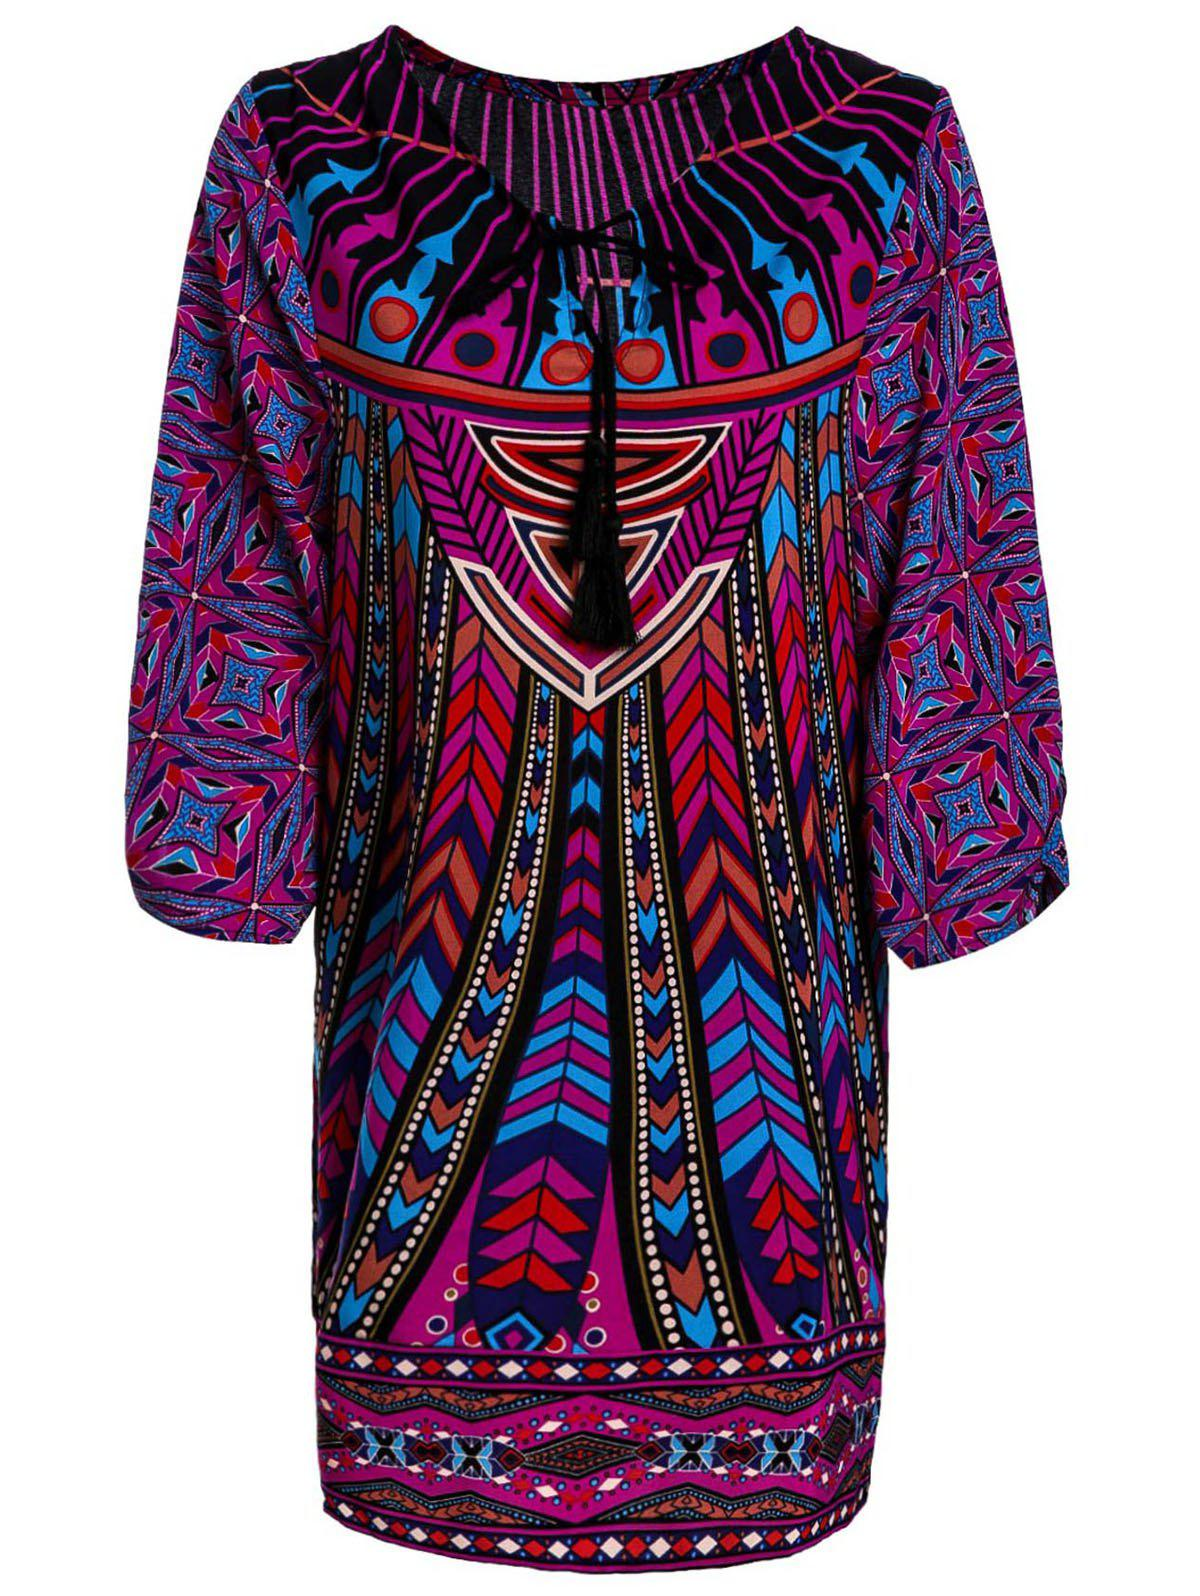 Lace-Up V-Neck Colorful Ethnic Print 3/4 Sleeve Dress For Women full print lace up baroco style v neck 3 4 sleeve dress for women